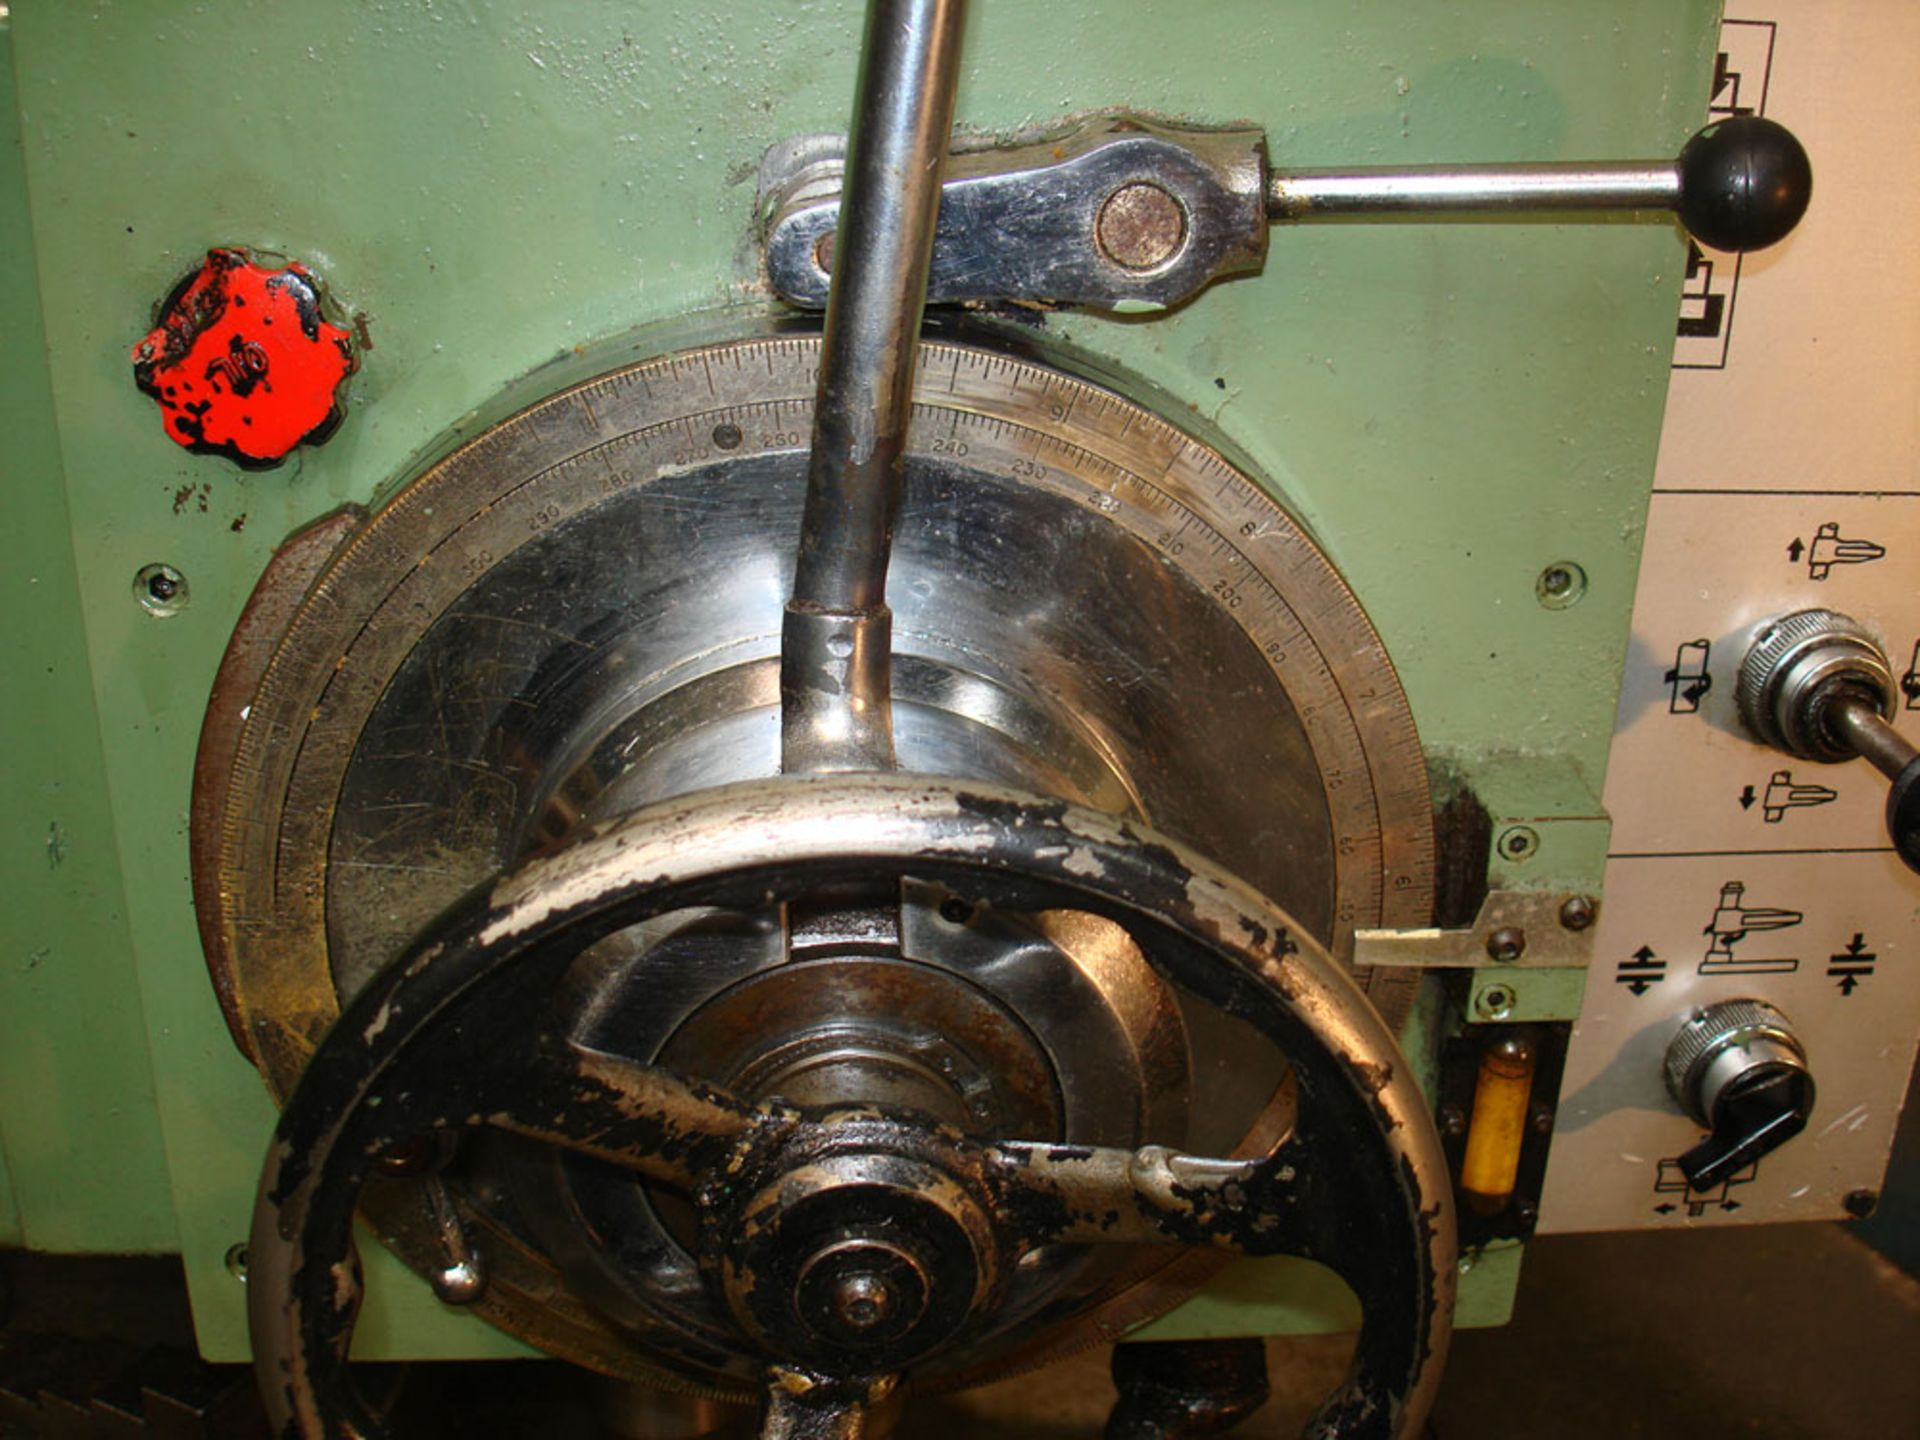 """Asquith Power thrust 4ft 6 Radial Arm Drill. Arm length 4ft 6"""". - Image 7 of 7"""